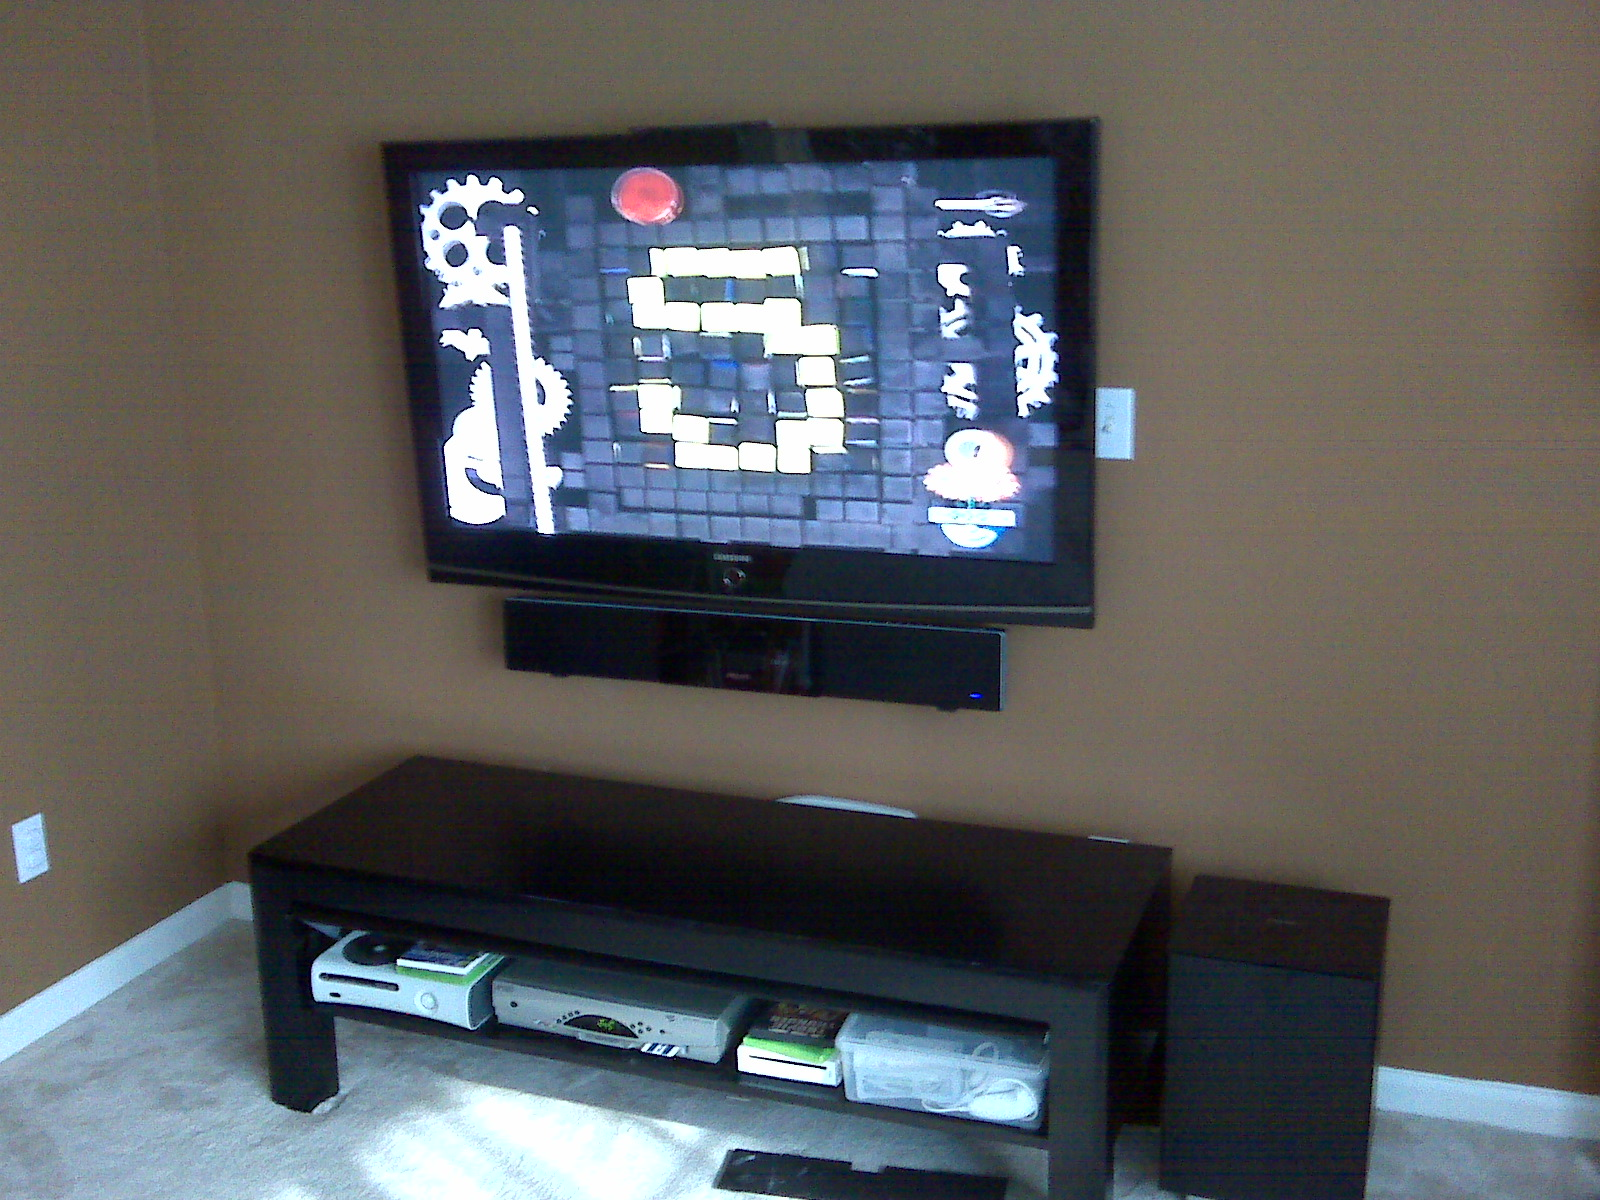 Wallingford Ct Tv Mounted On Wall With Sound Bar Below